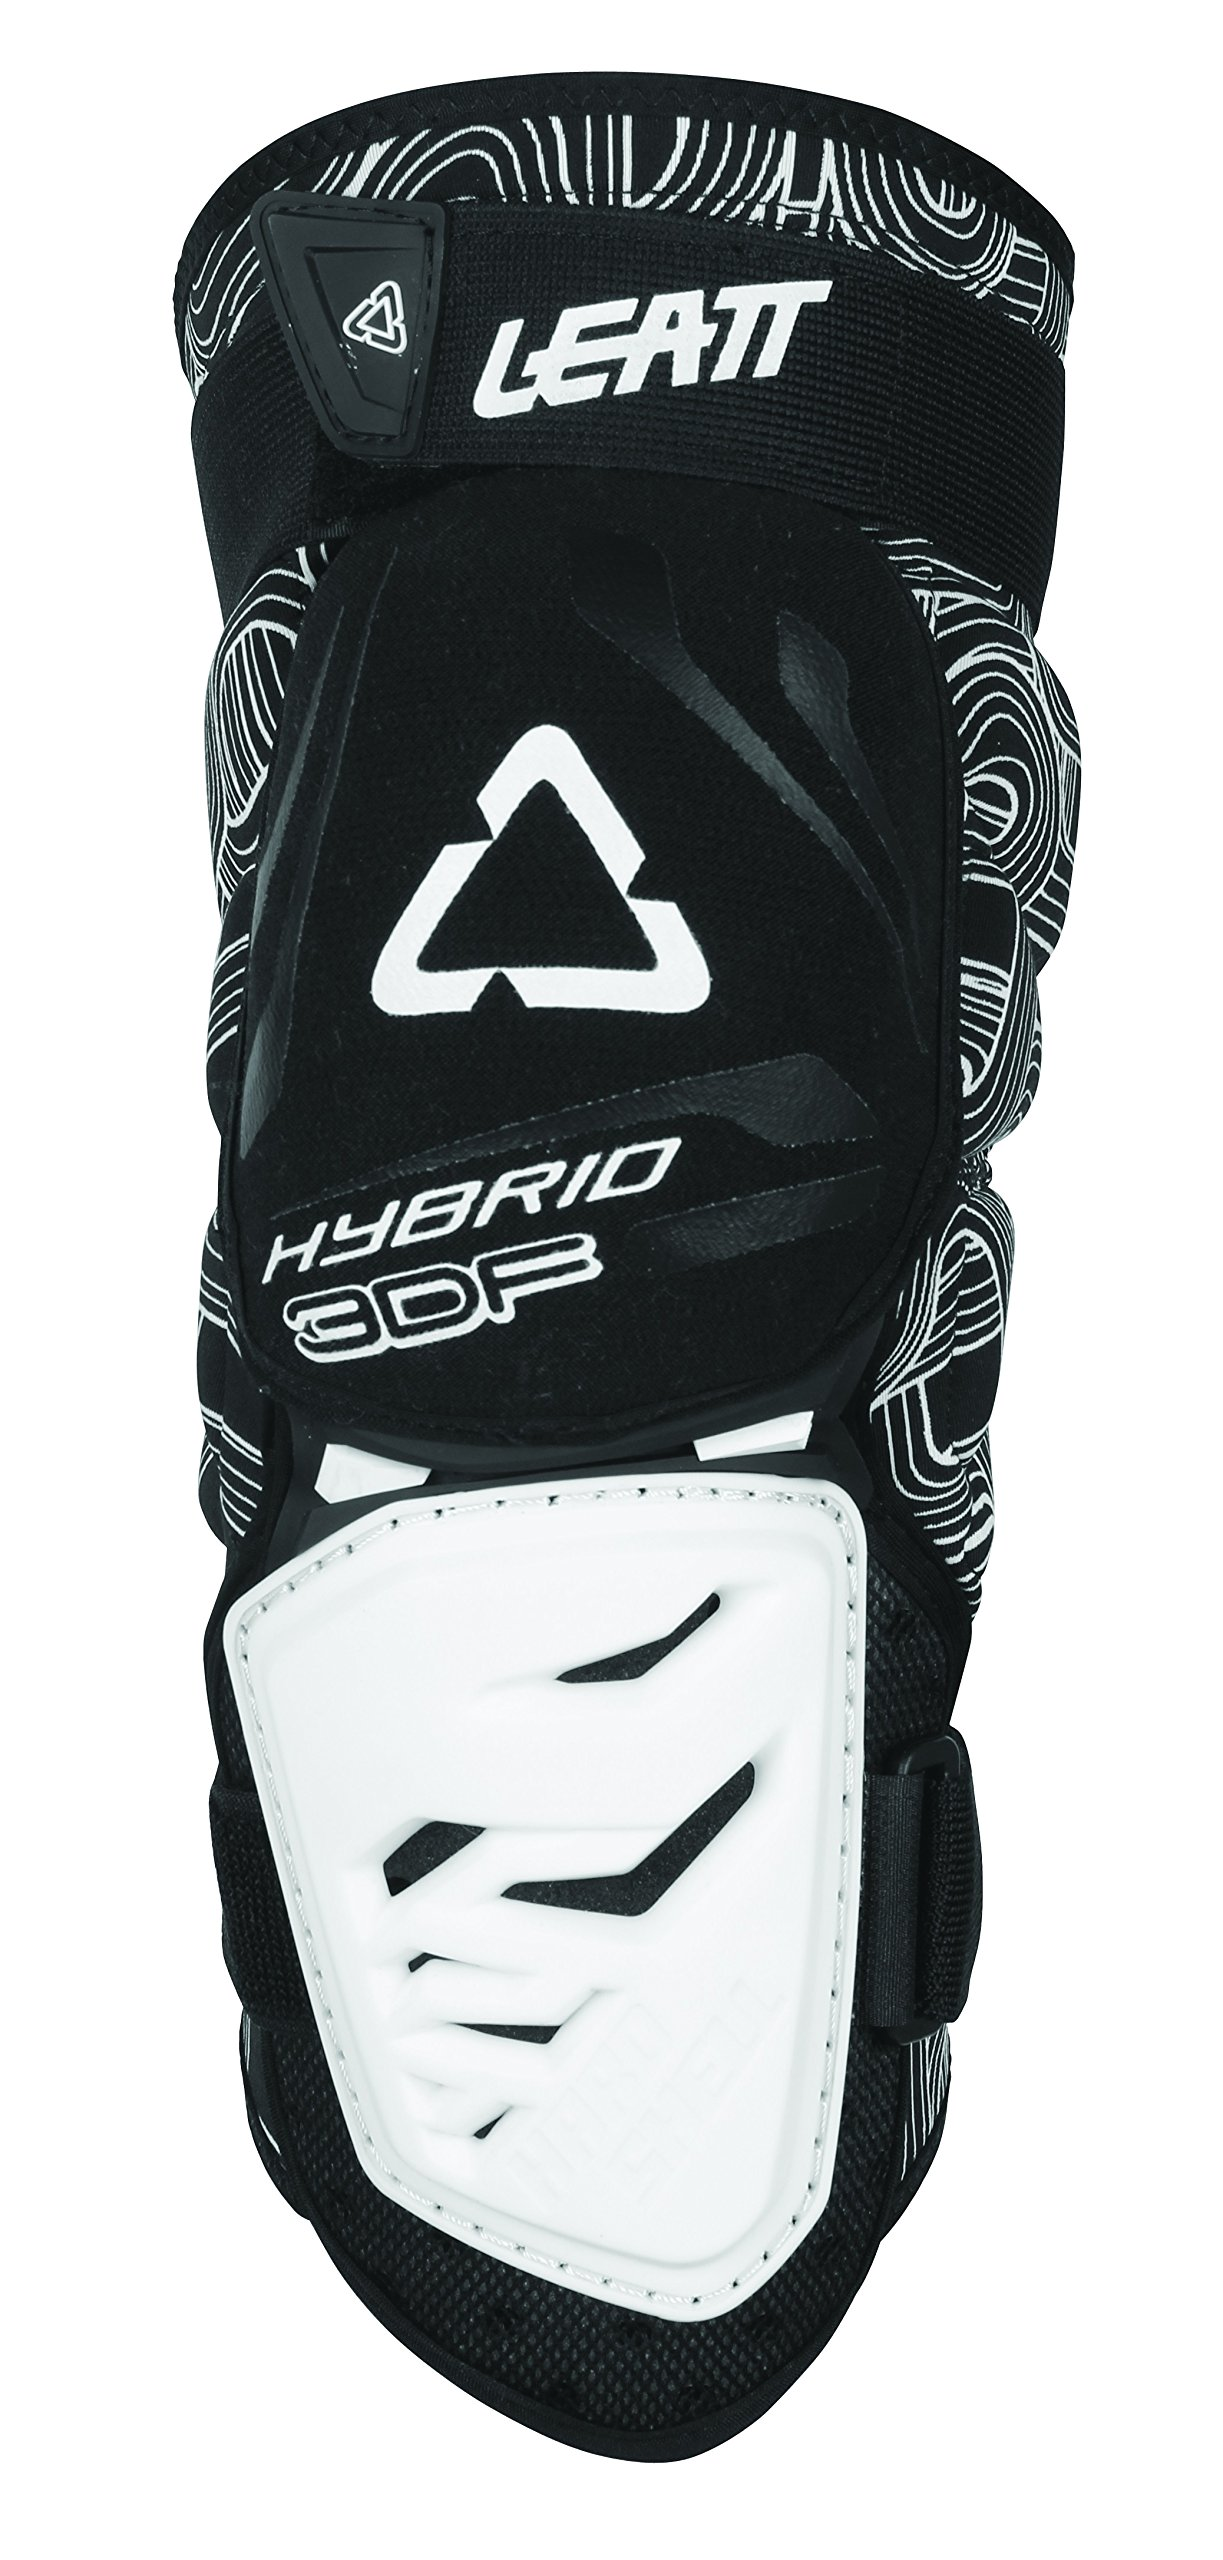 Leatt 3DF Hybrid Knee Guard (Black/White, Large/X-Large)